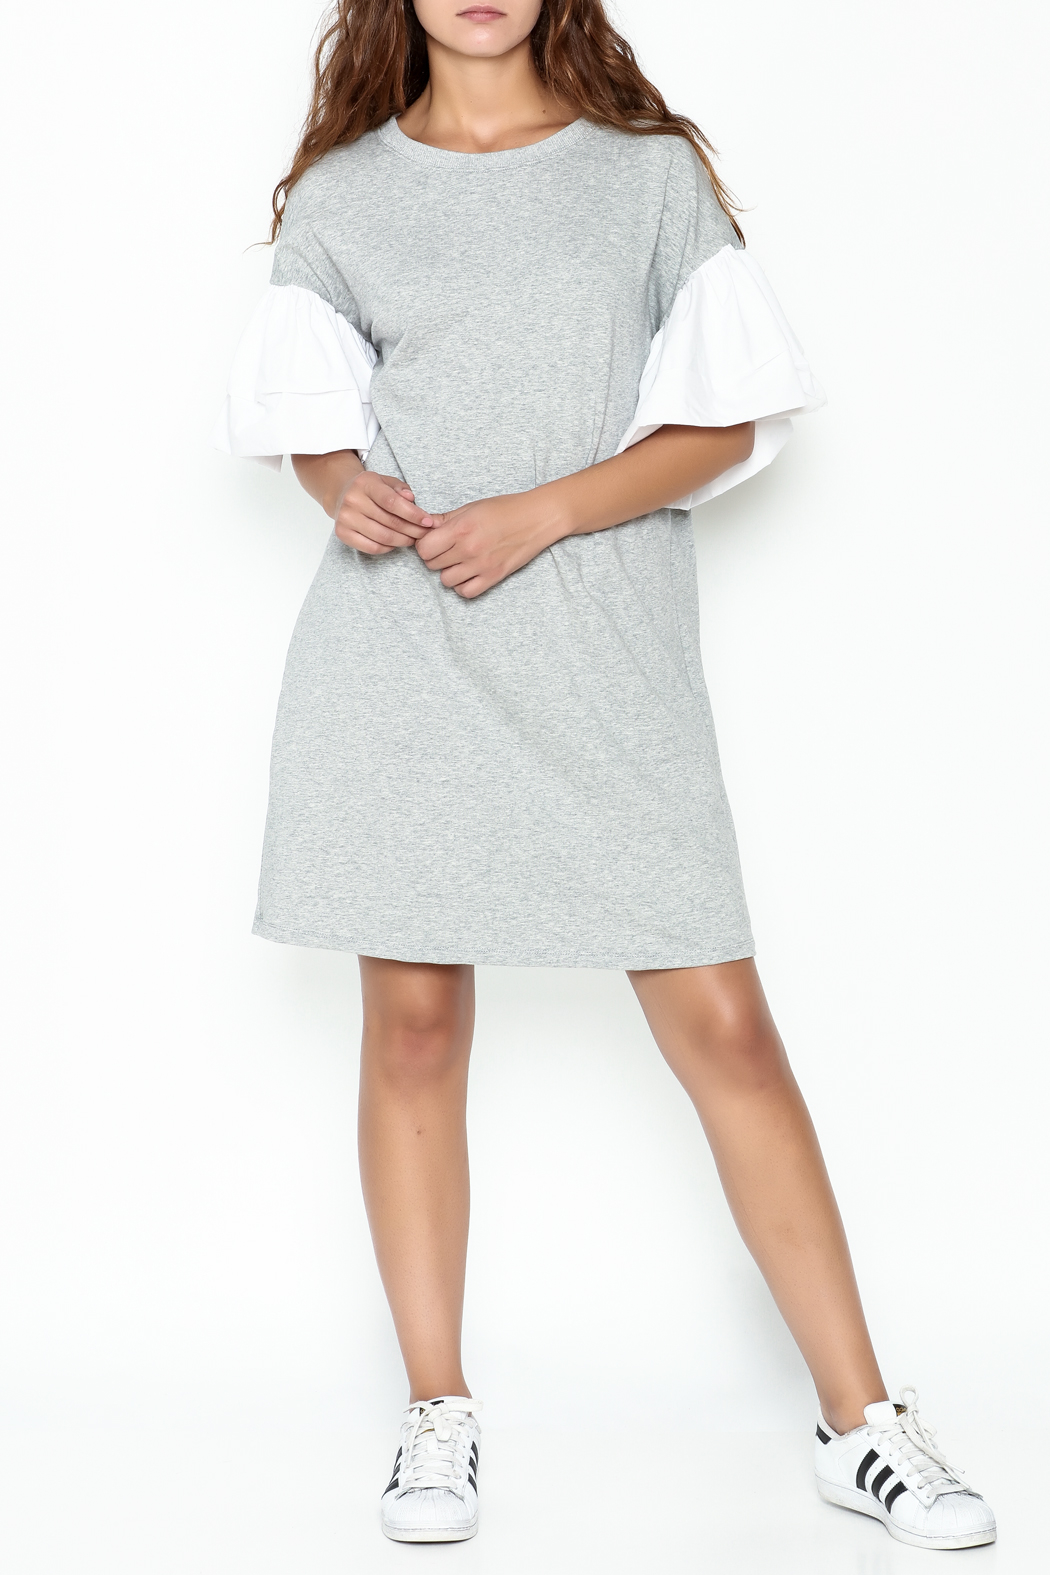 cq by cq Contrast Sleeve Shift Dress - Side Cropped Image